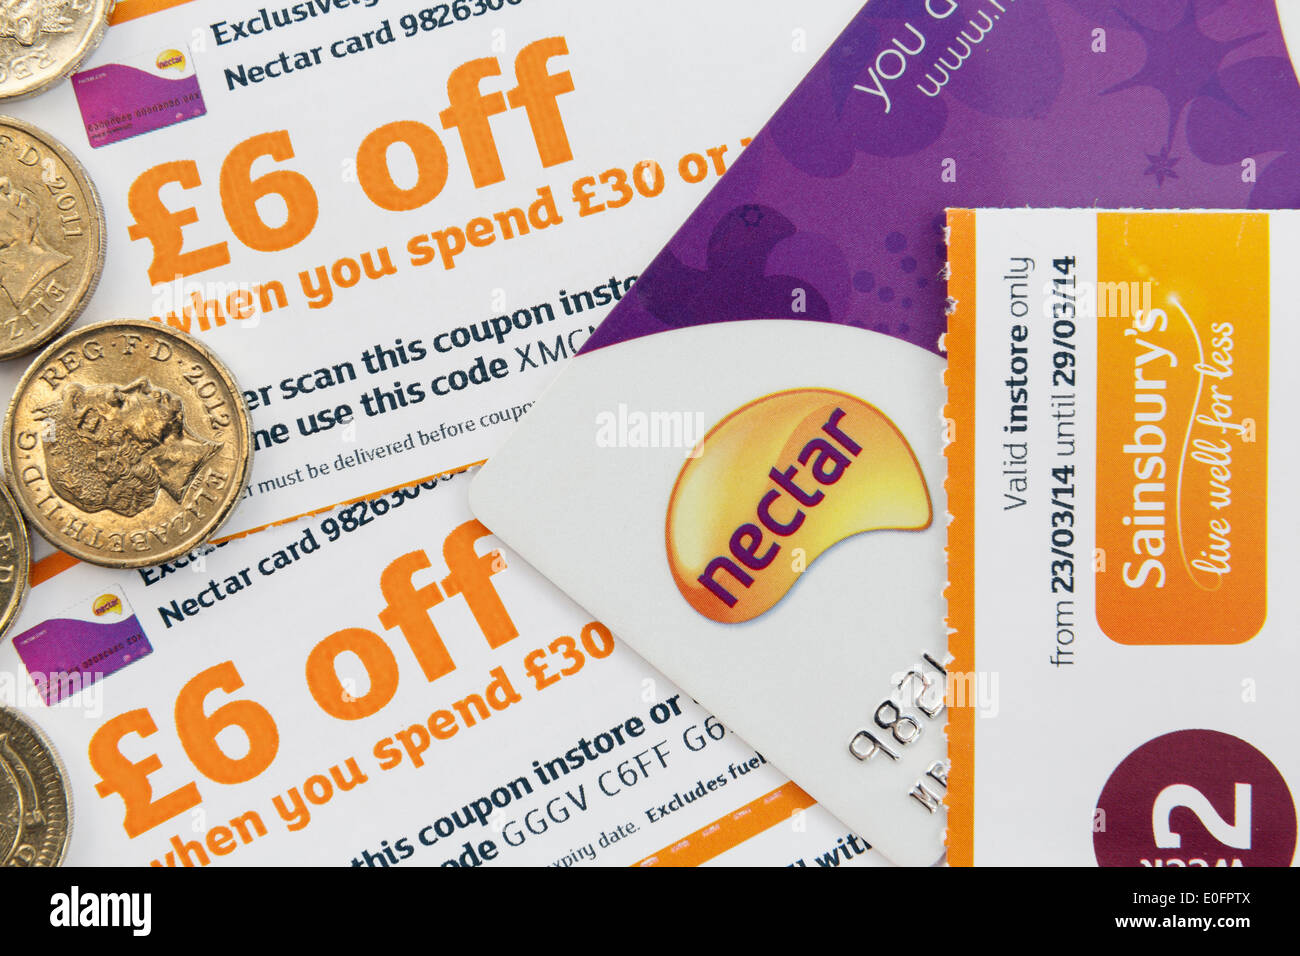 Nectar card and pound coins with £6 money off coupons to save when spending in a Sainsbury's supermarket store.ValueStock Photo